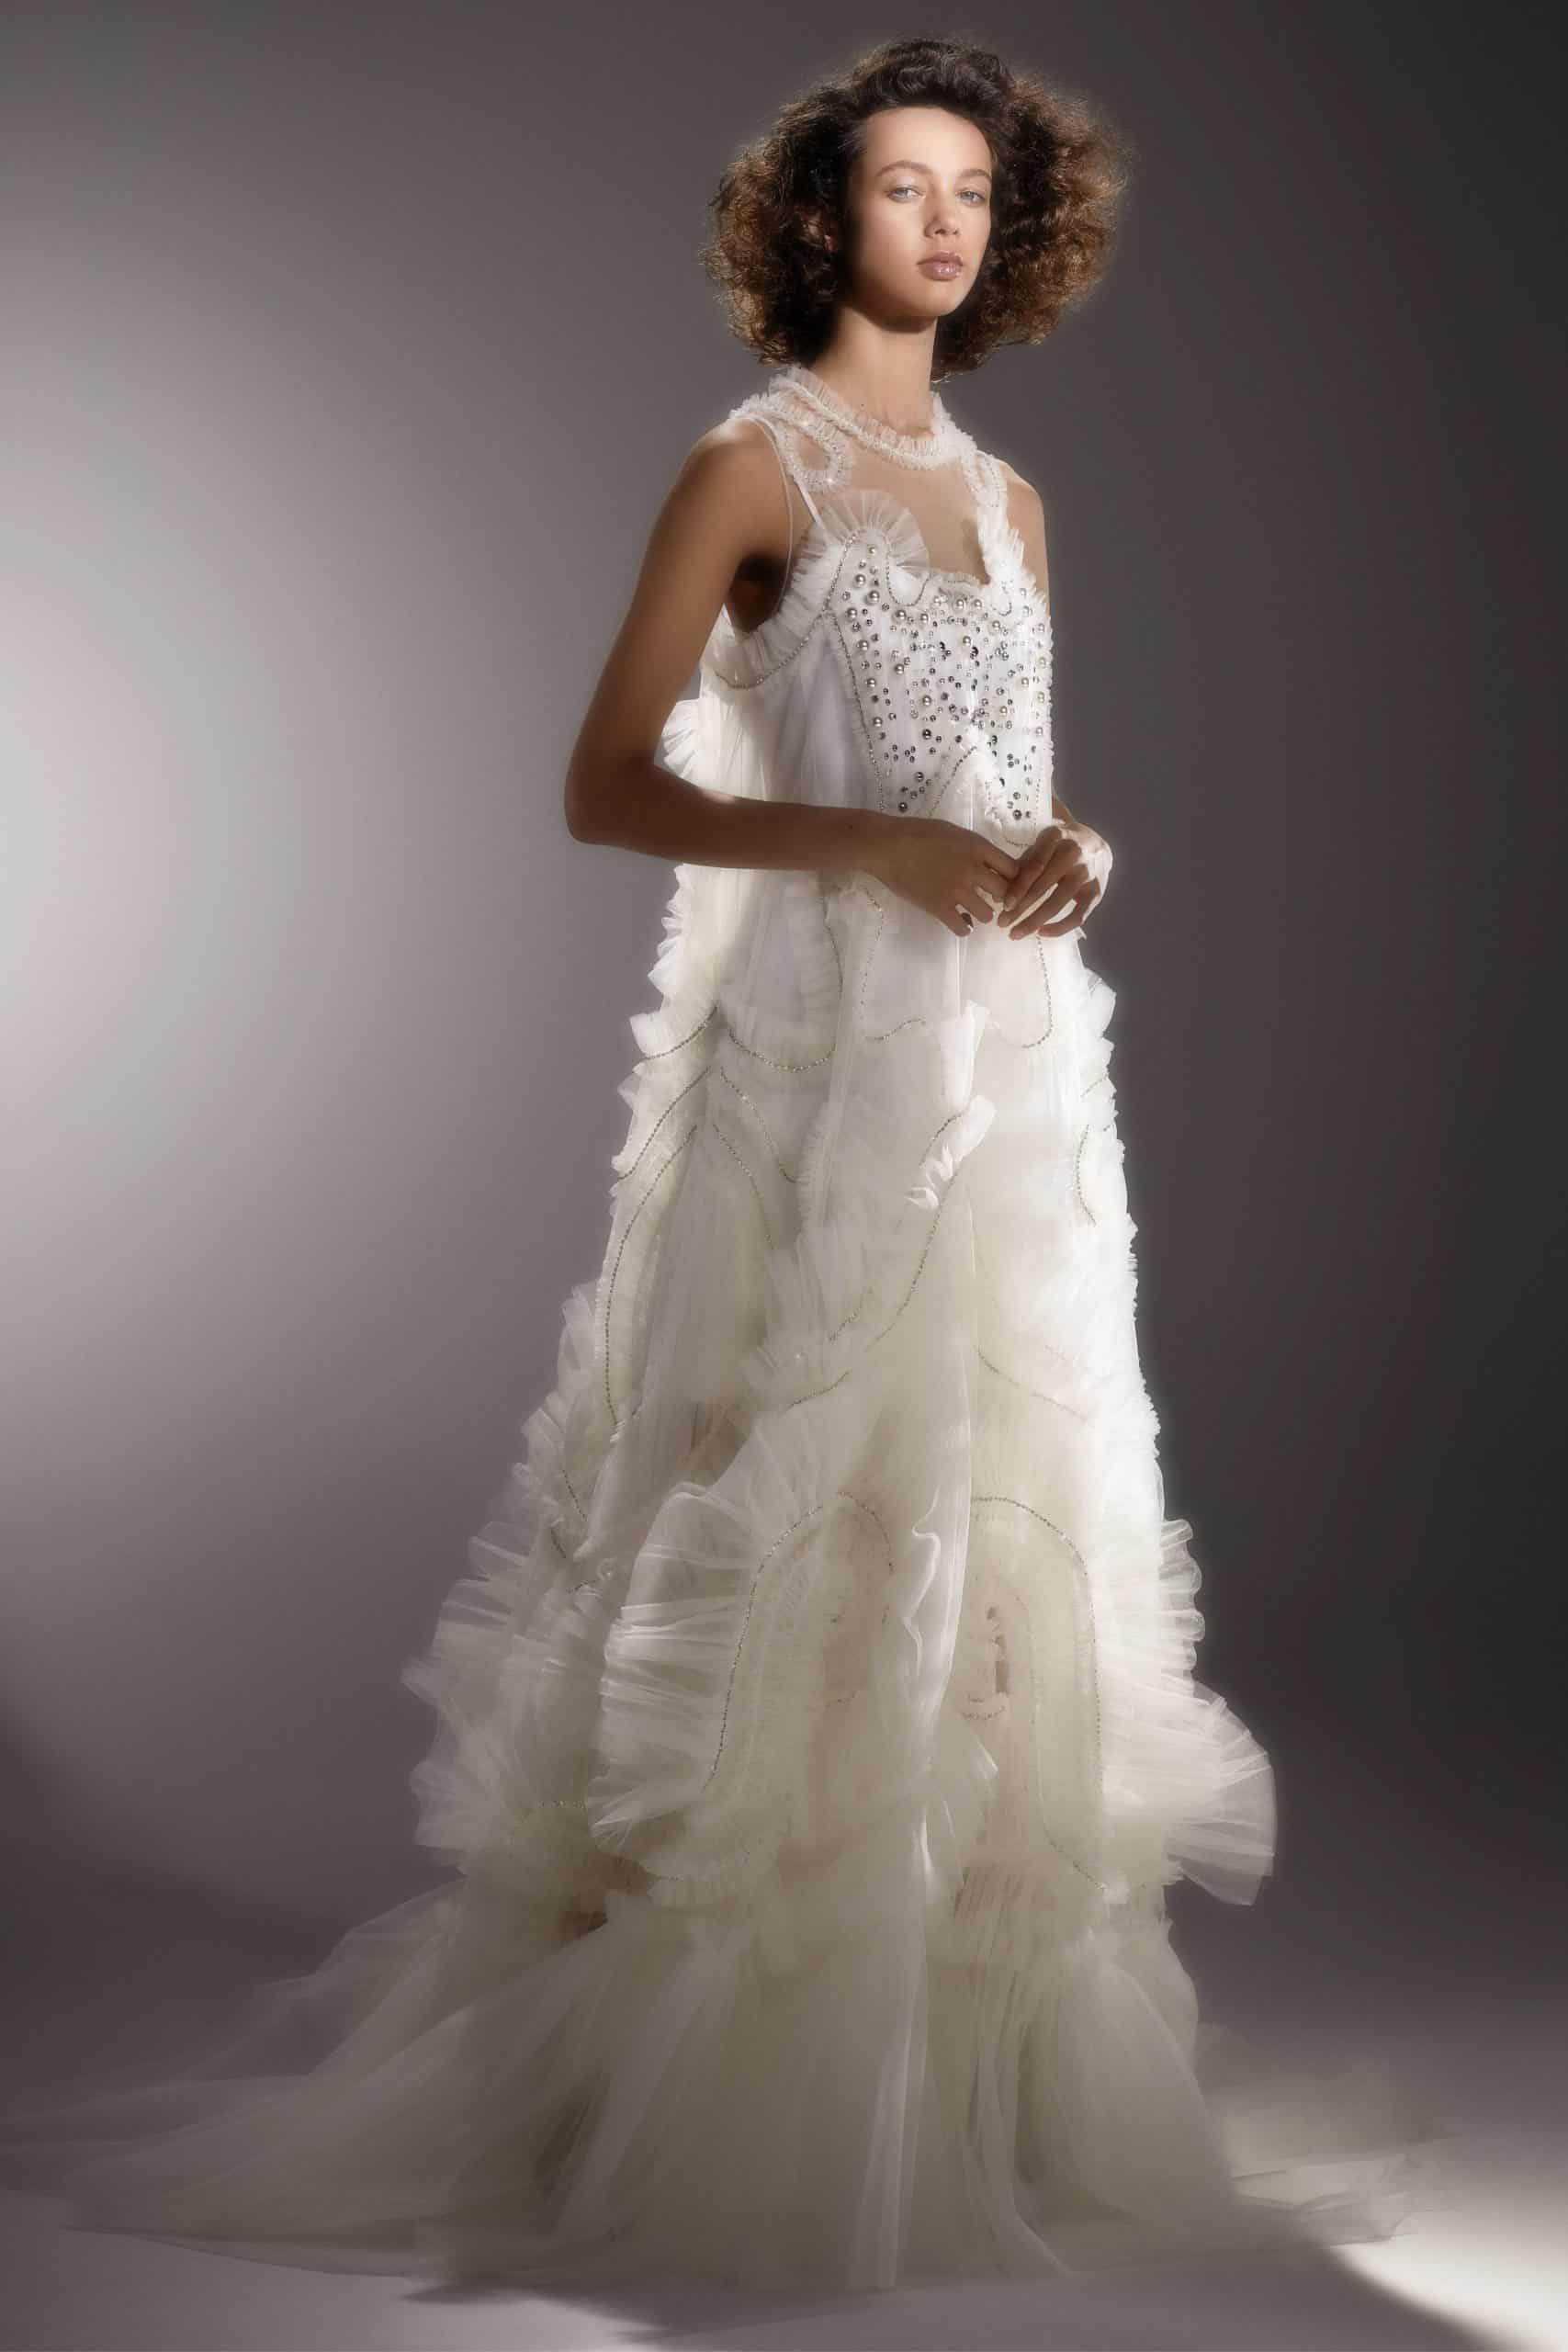 wedding dress with tulle and diamonds by Viktor and Rolf